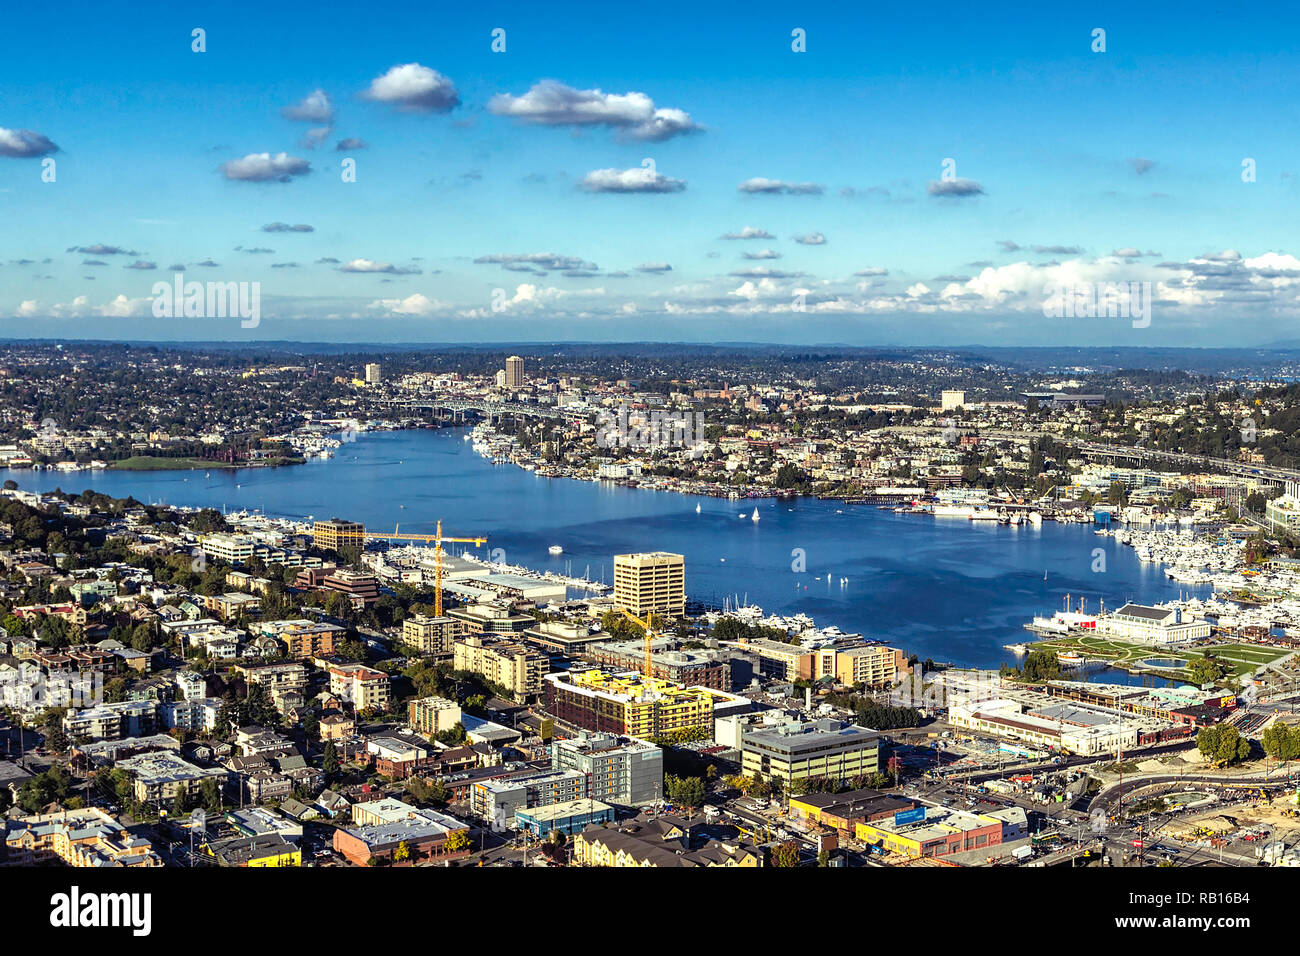 Lake Union and surrounding districts view in Seattle, USA - Stock Image